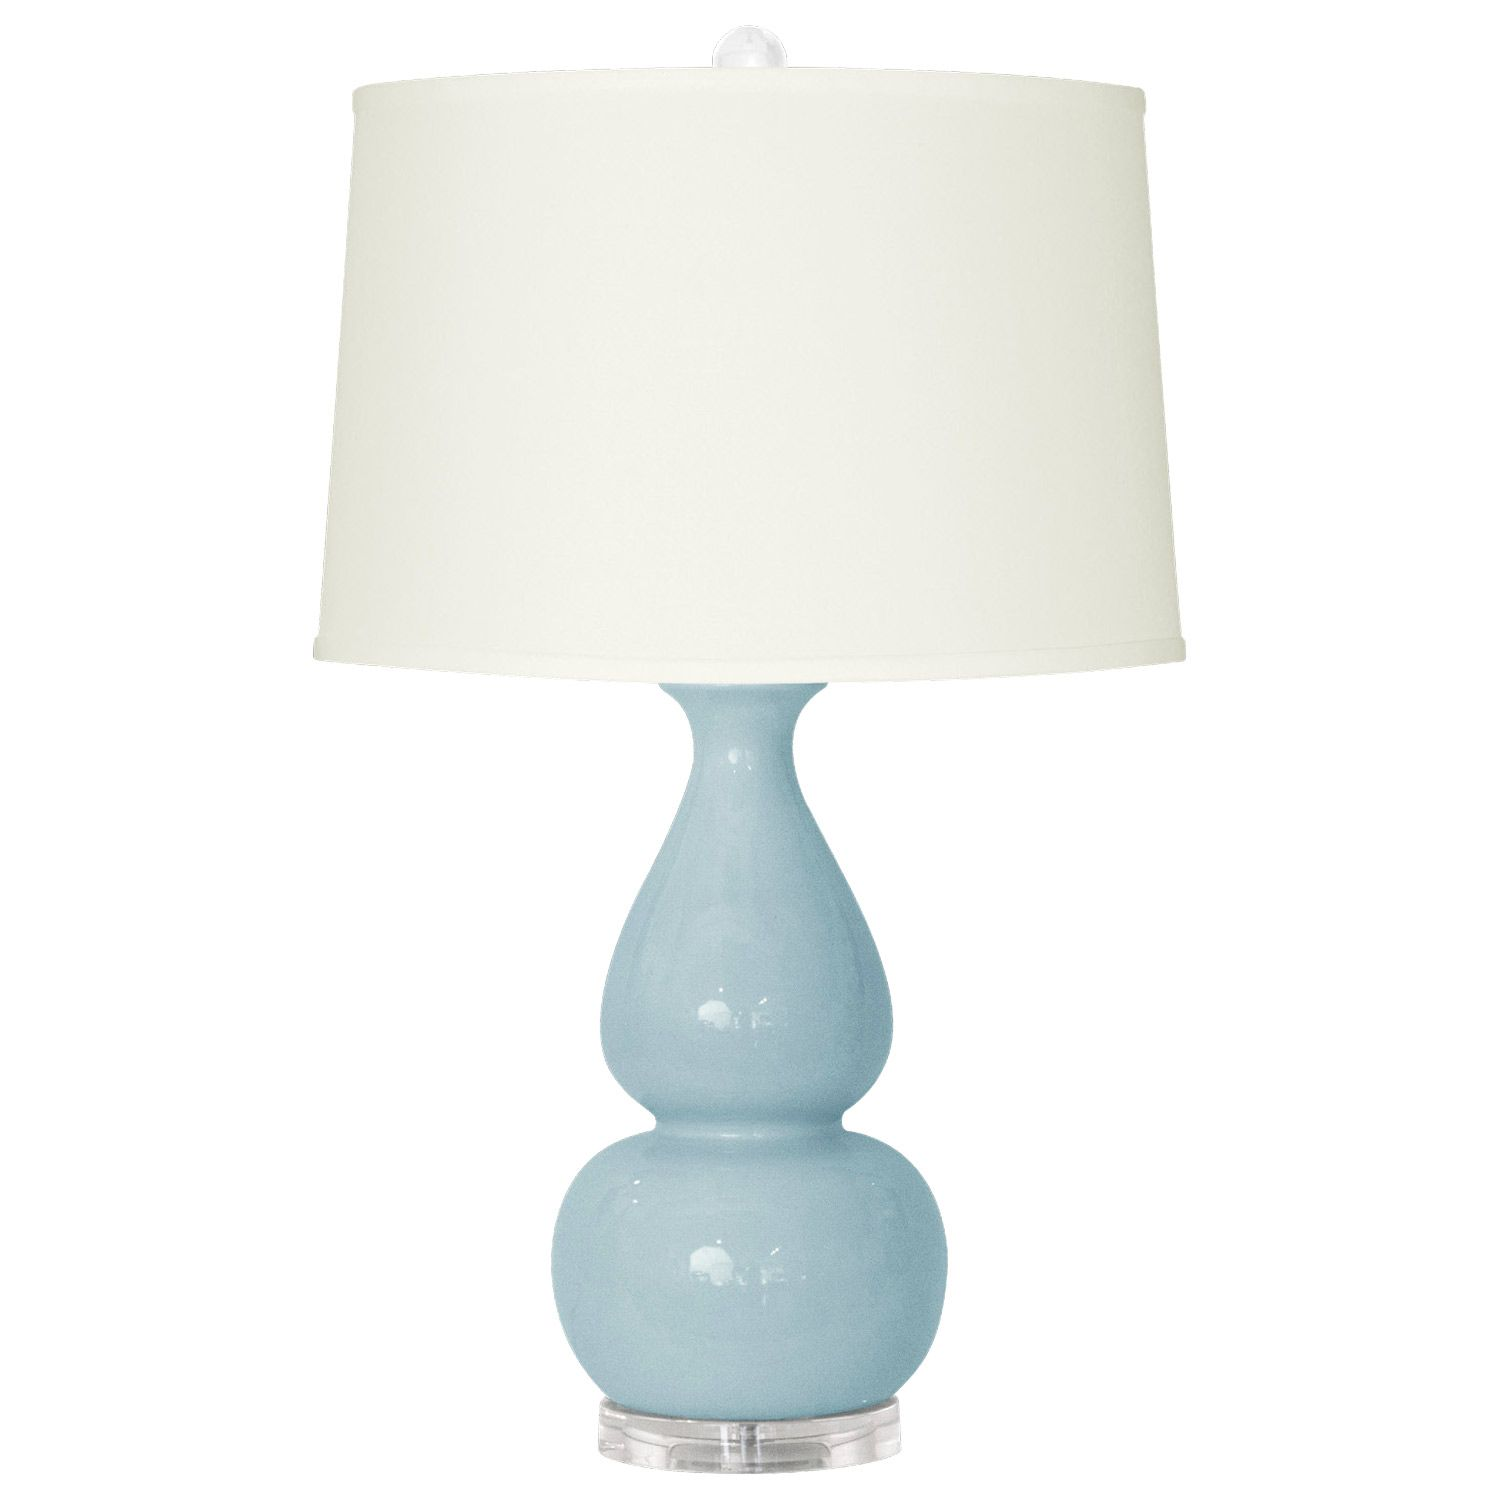 Bungalow 5 Emilia Light Blue Table Lamp Base From Layla Grayce